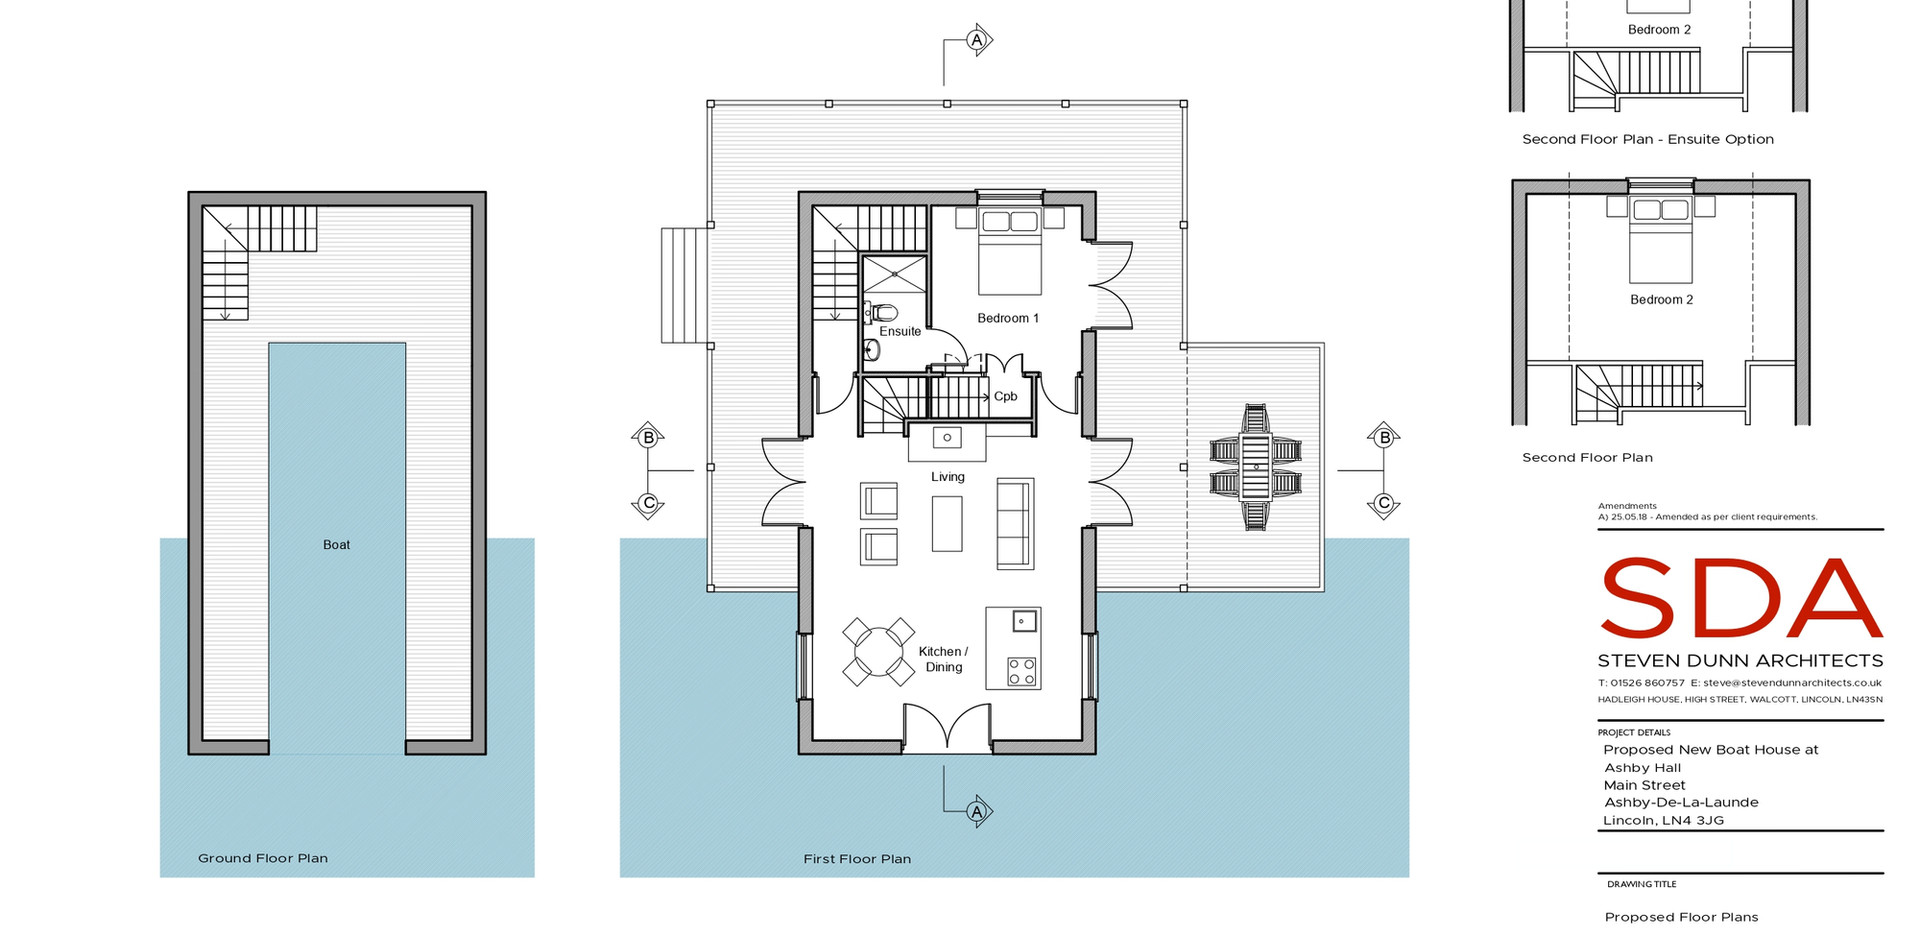 05a - Proposed Floor Plans_page-0001.jpg